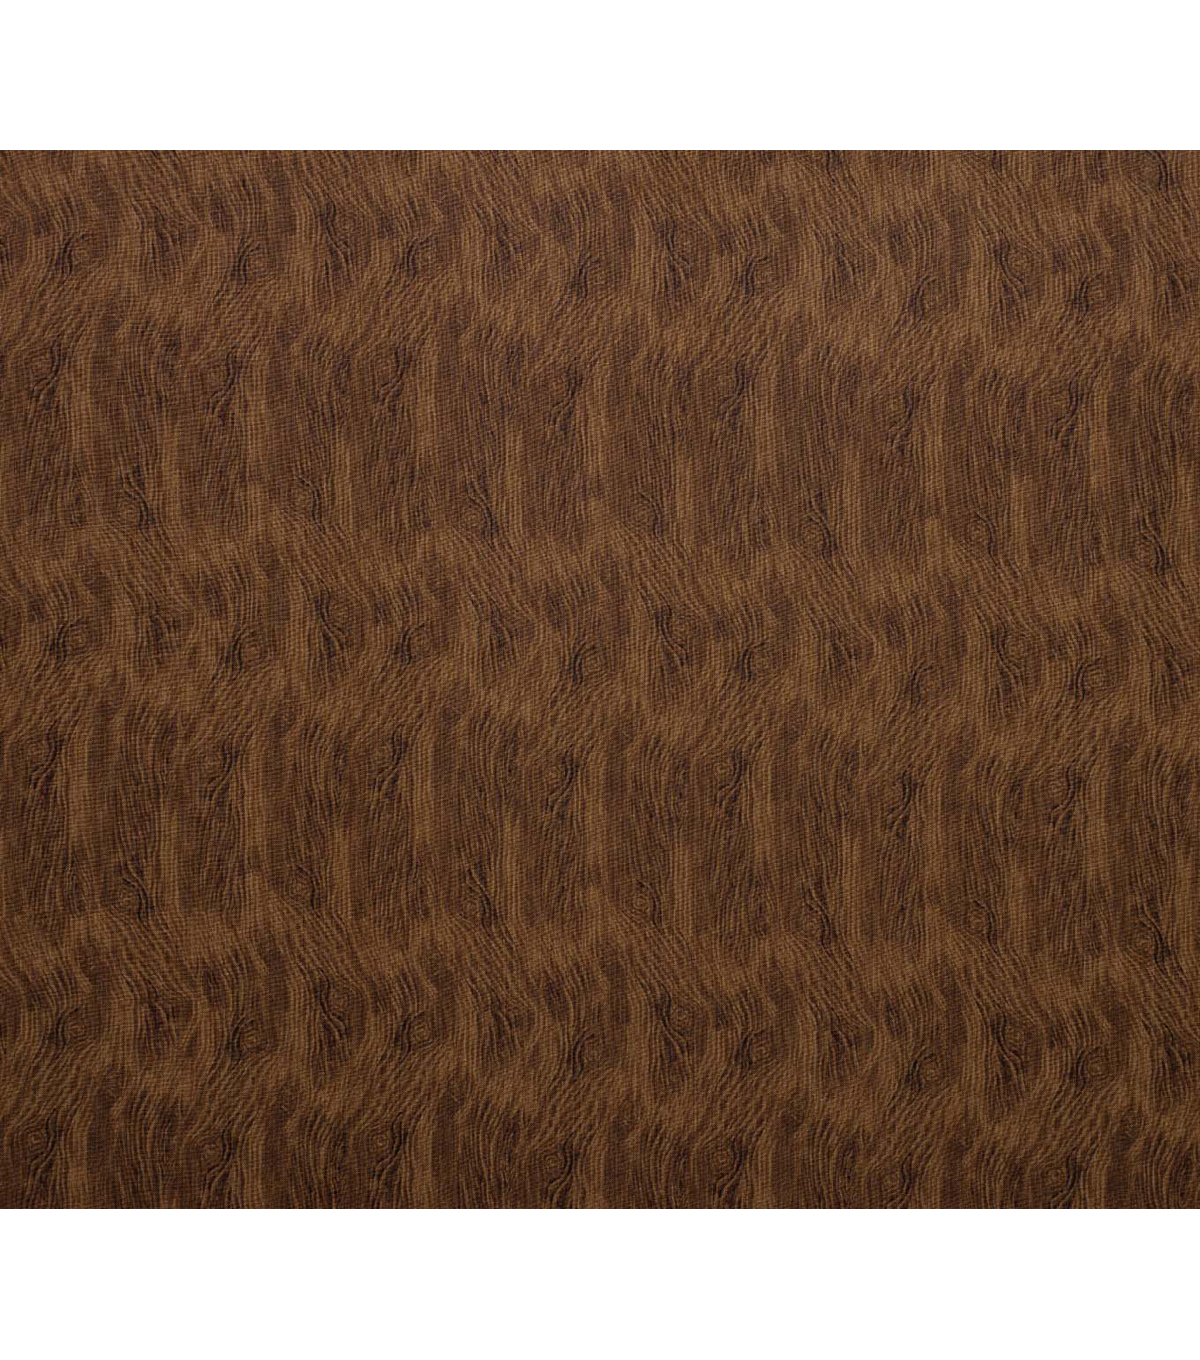 Novelty Cotton Fabric-Brown Woodgrain